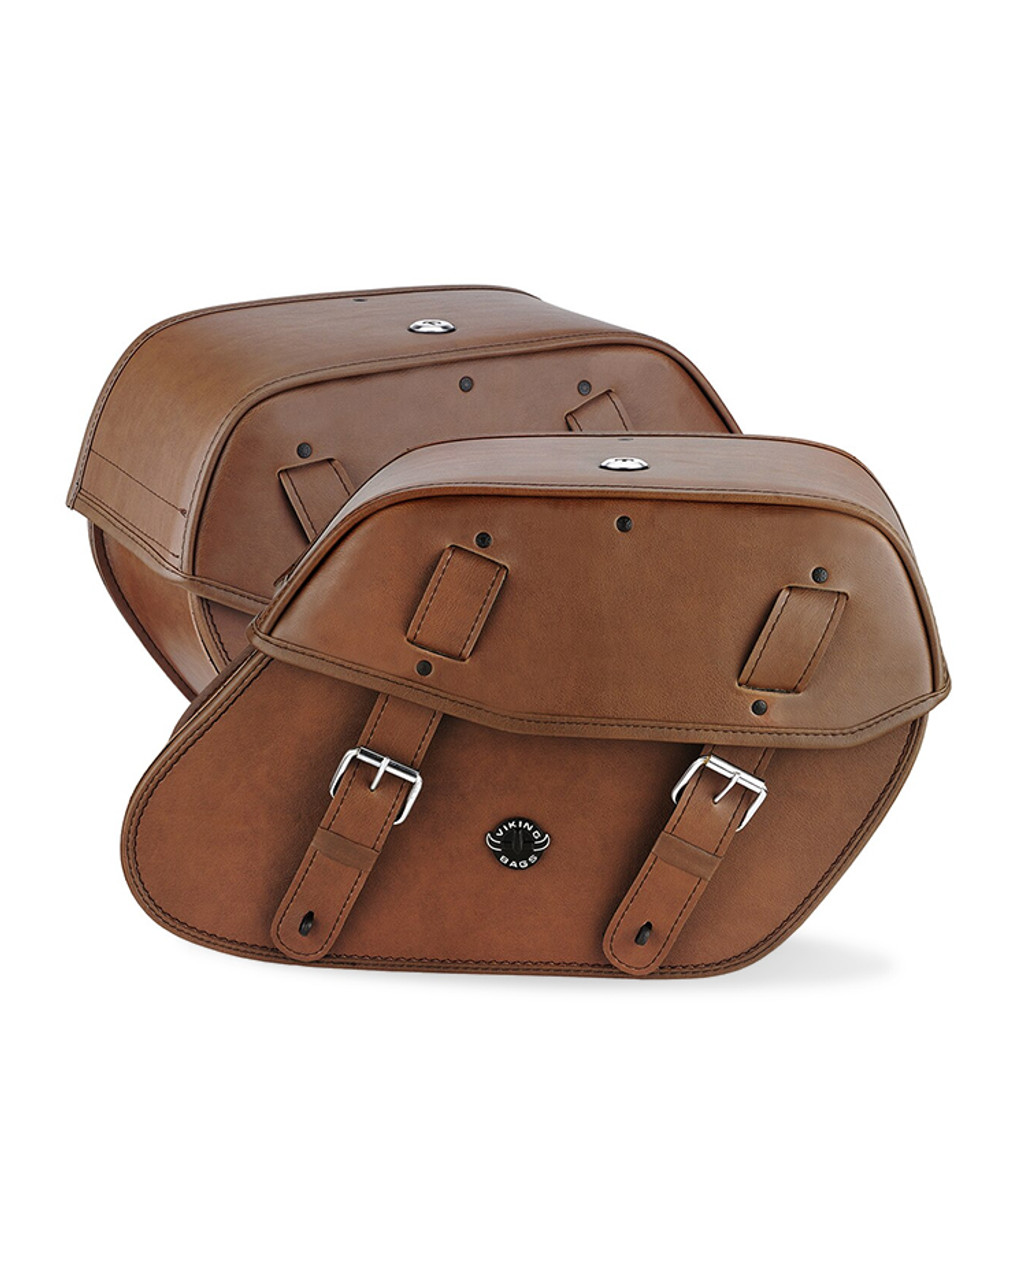 Viking Odin Brown Large Motorcycle Saddlebags For Harley Softail Night Train FXSTB Both Bags View